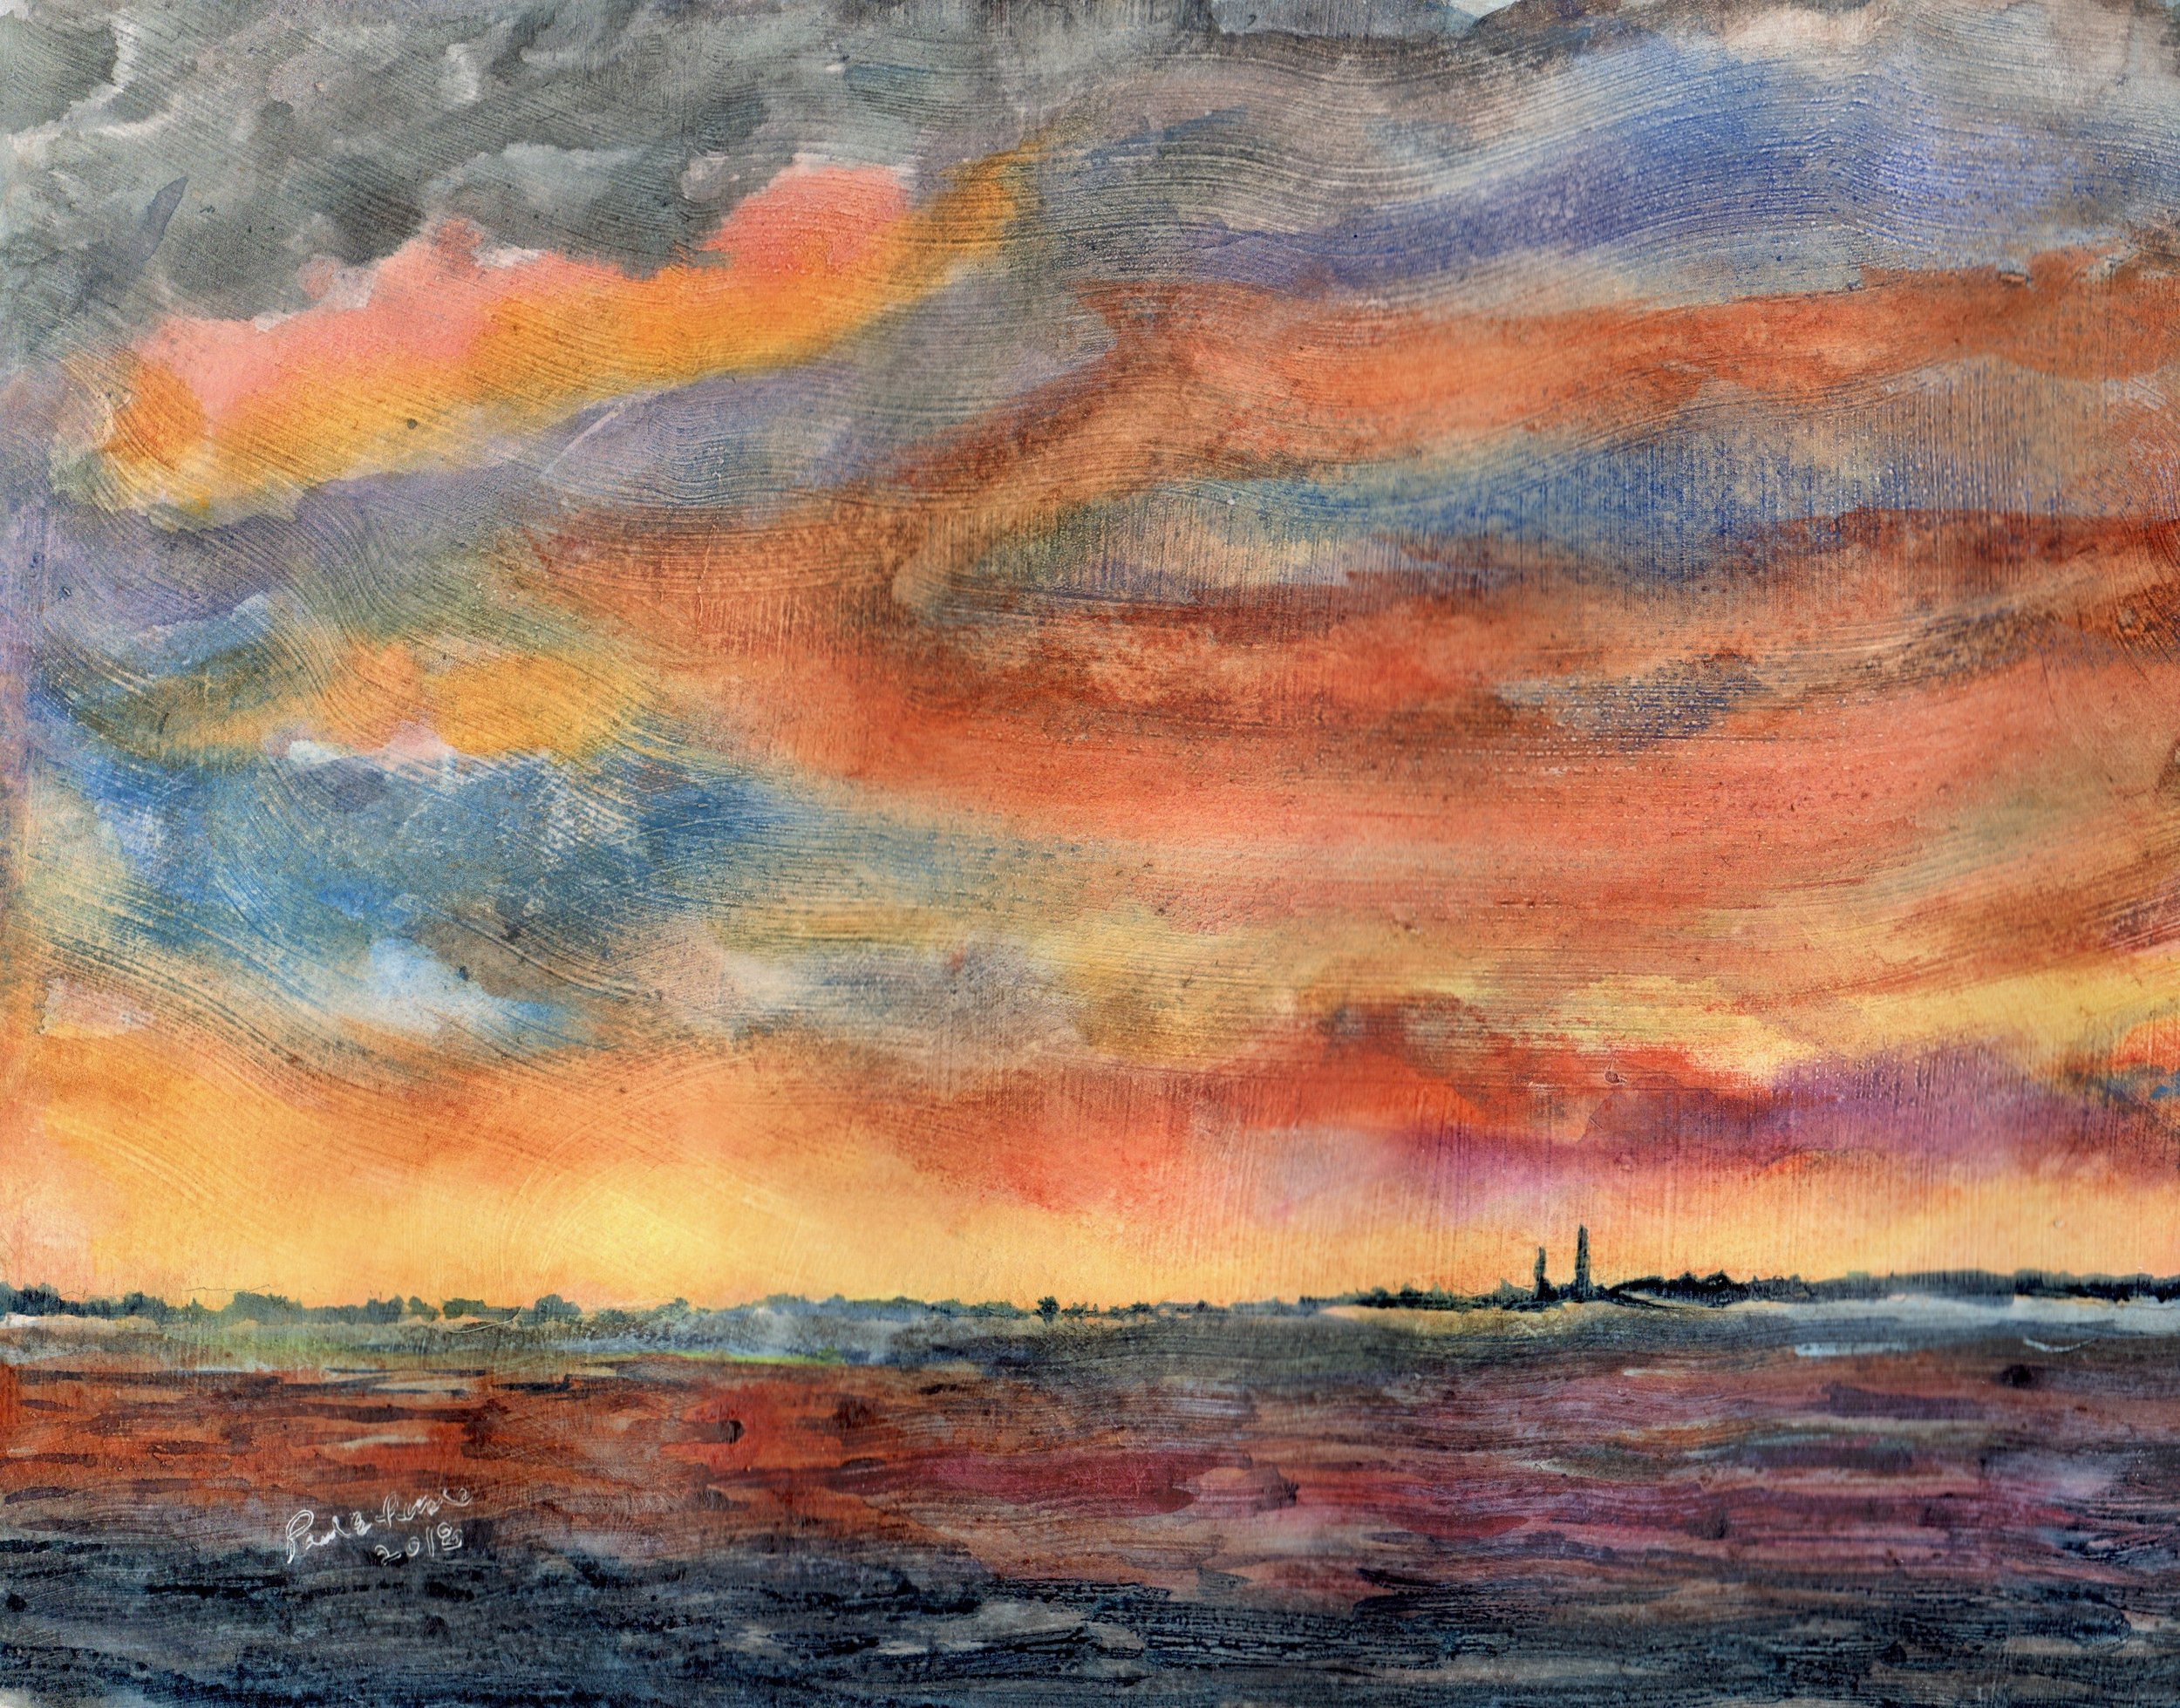 Indian River Bay Sunset  Medium: watercolor on gesso coated cotton paper